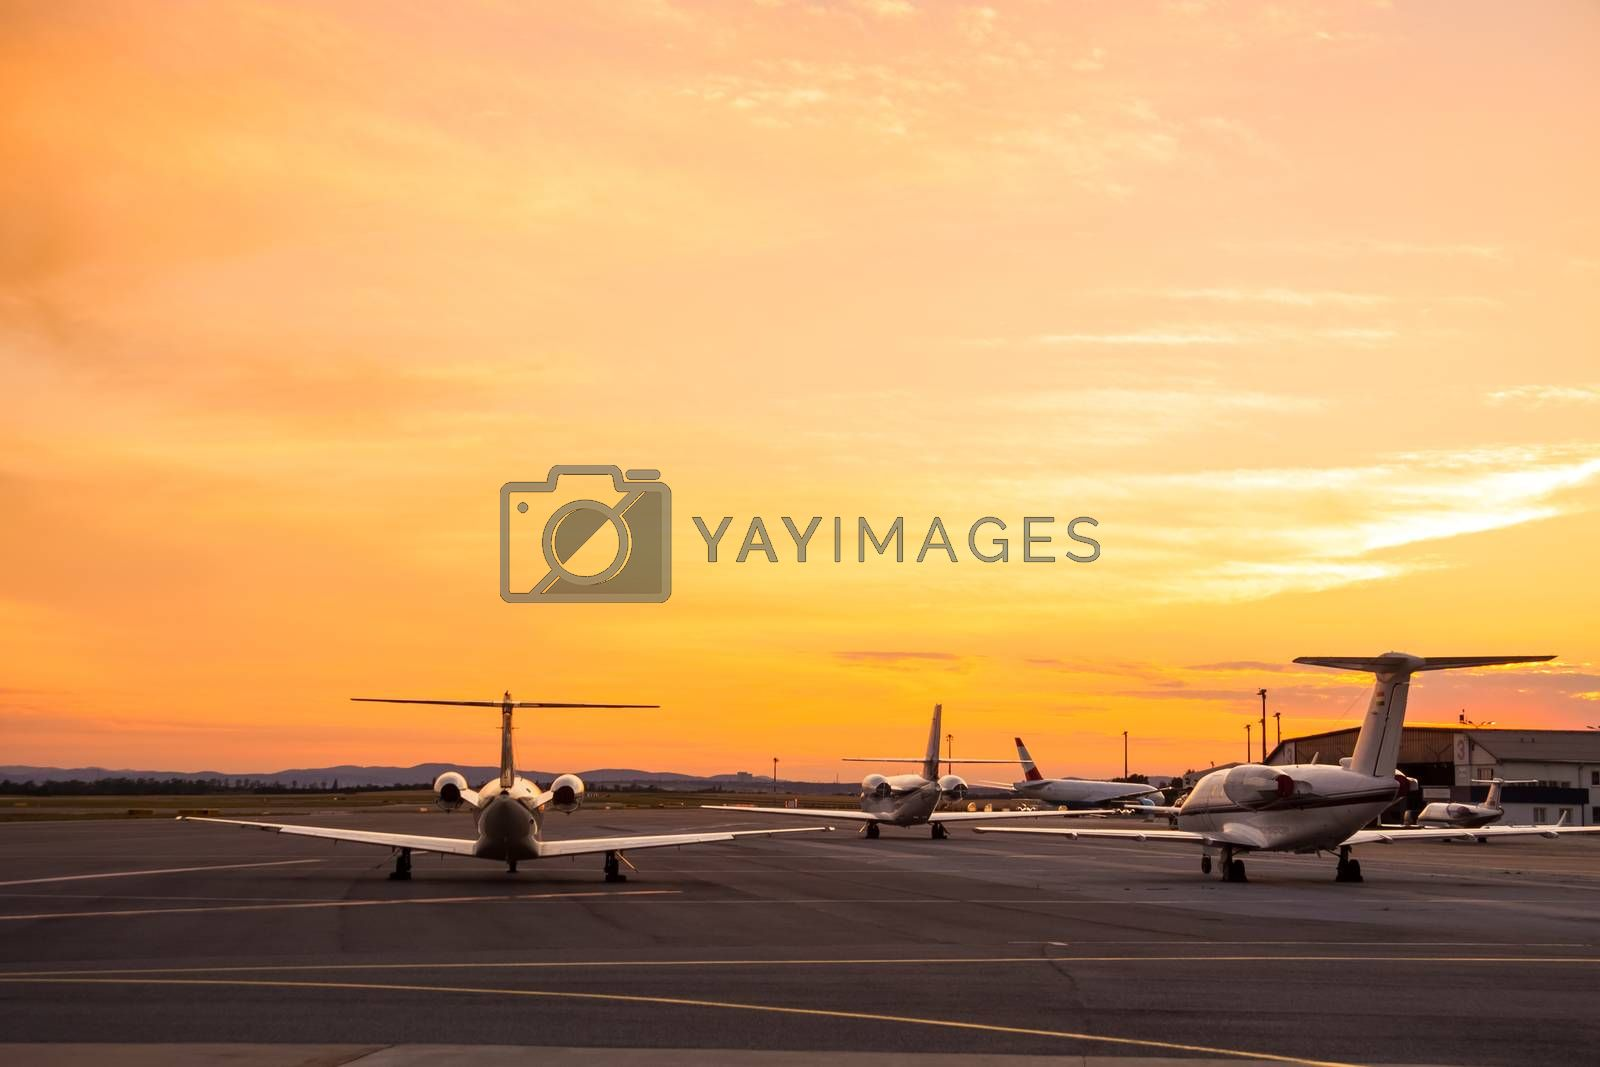 Private airplanes parked at the airport at sunset.